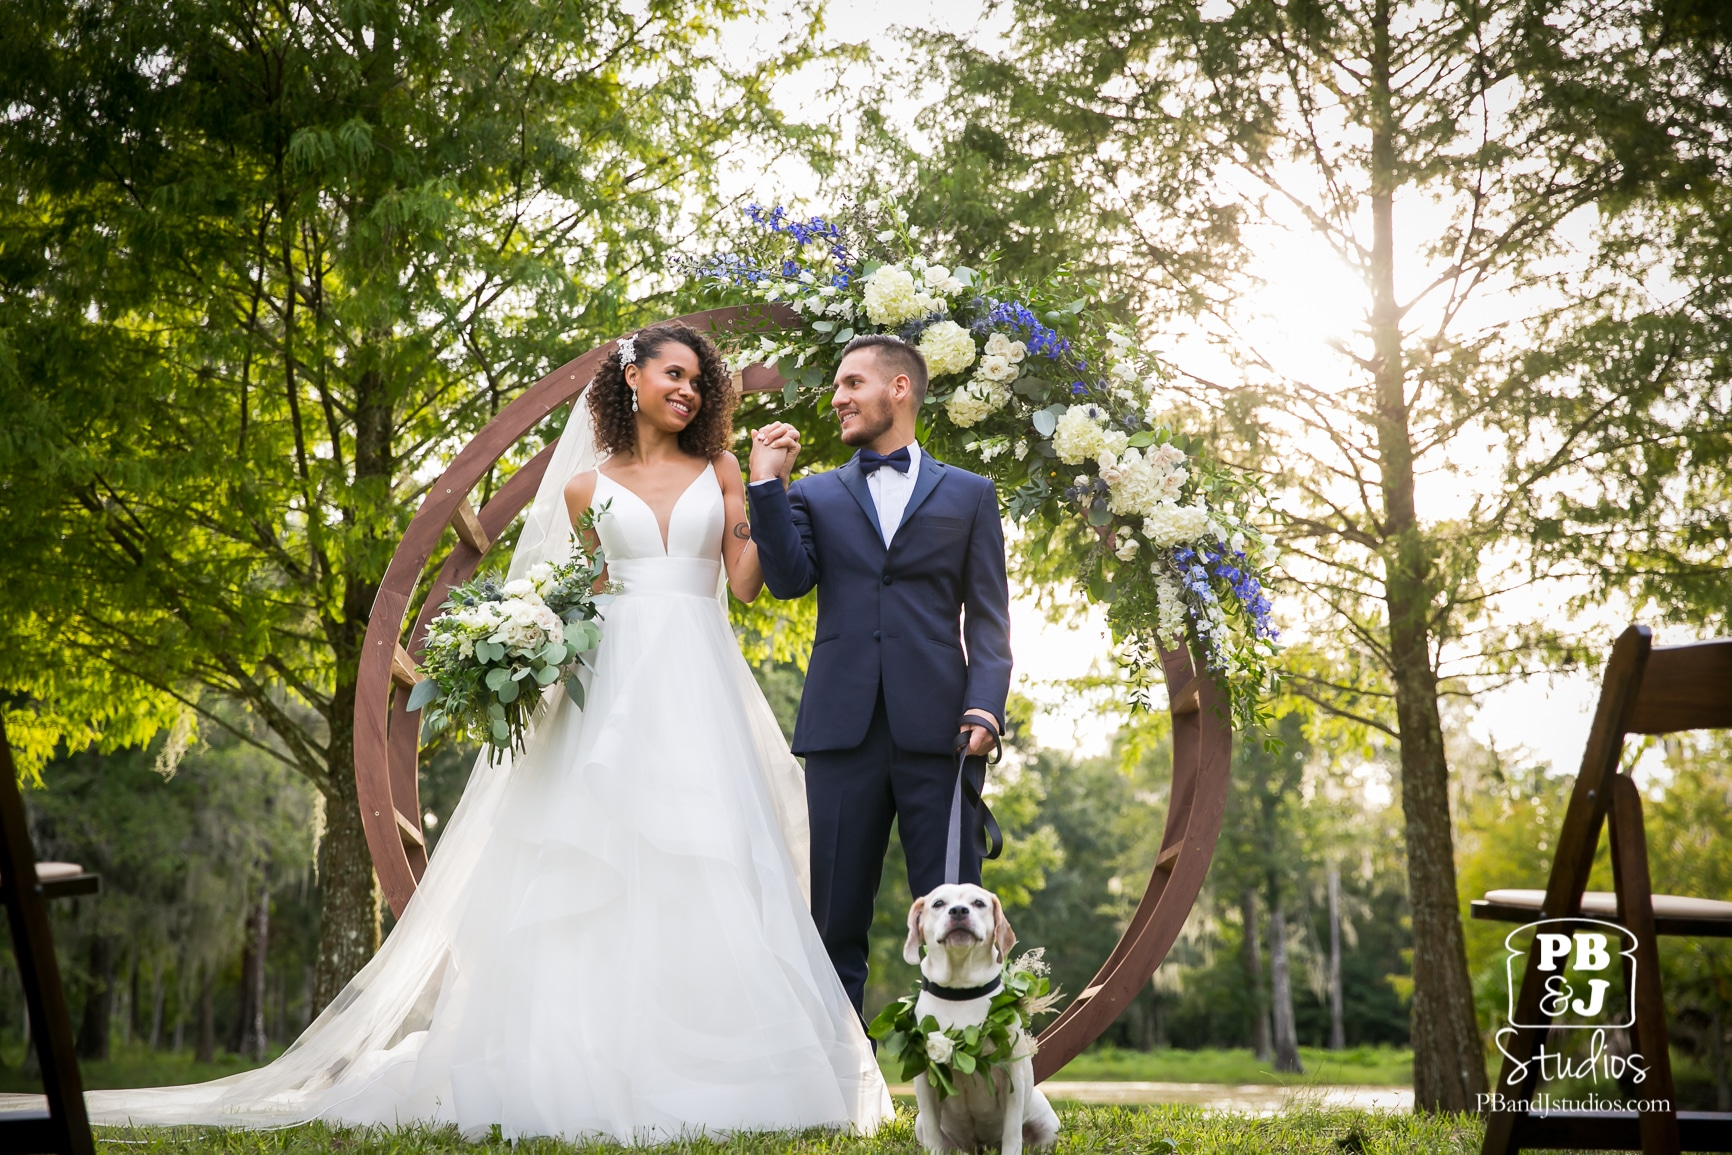 bride & groom with dog at ceremony